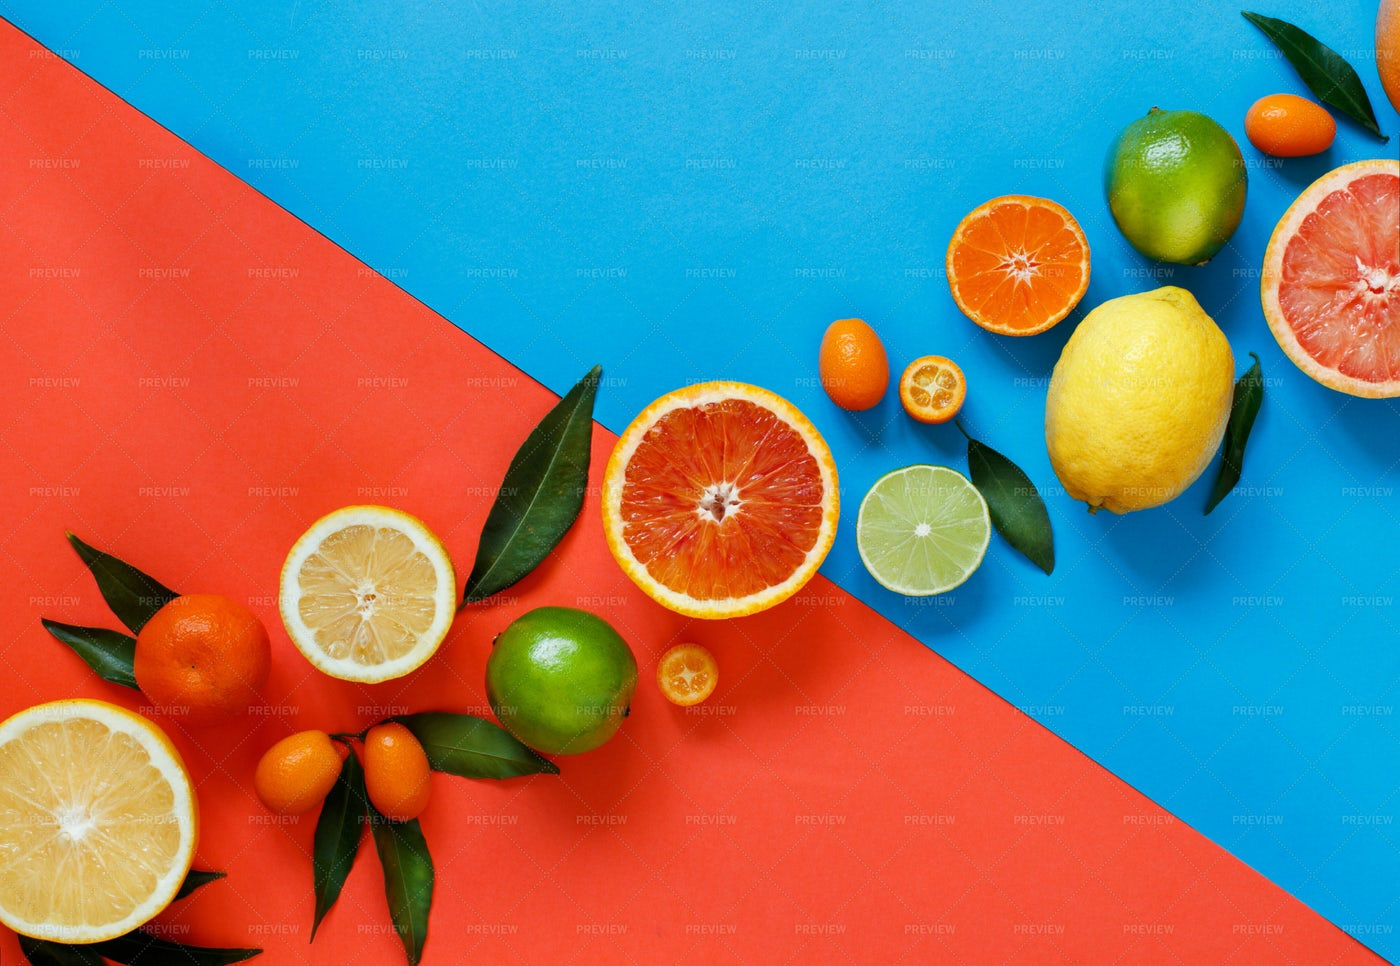 Citrus Fruits And Leaves: Stock Photos